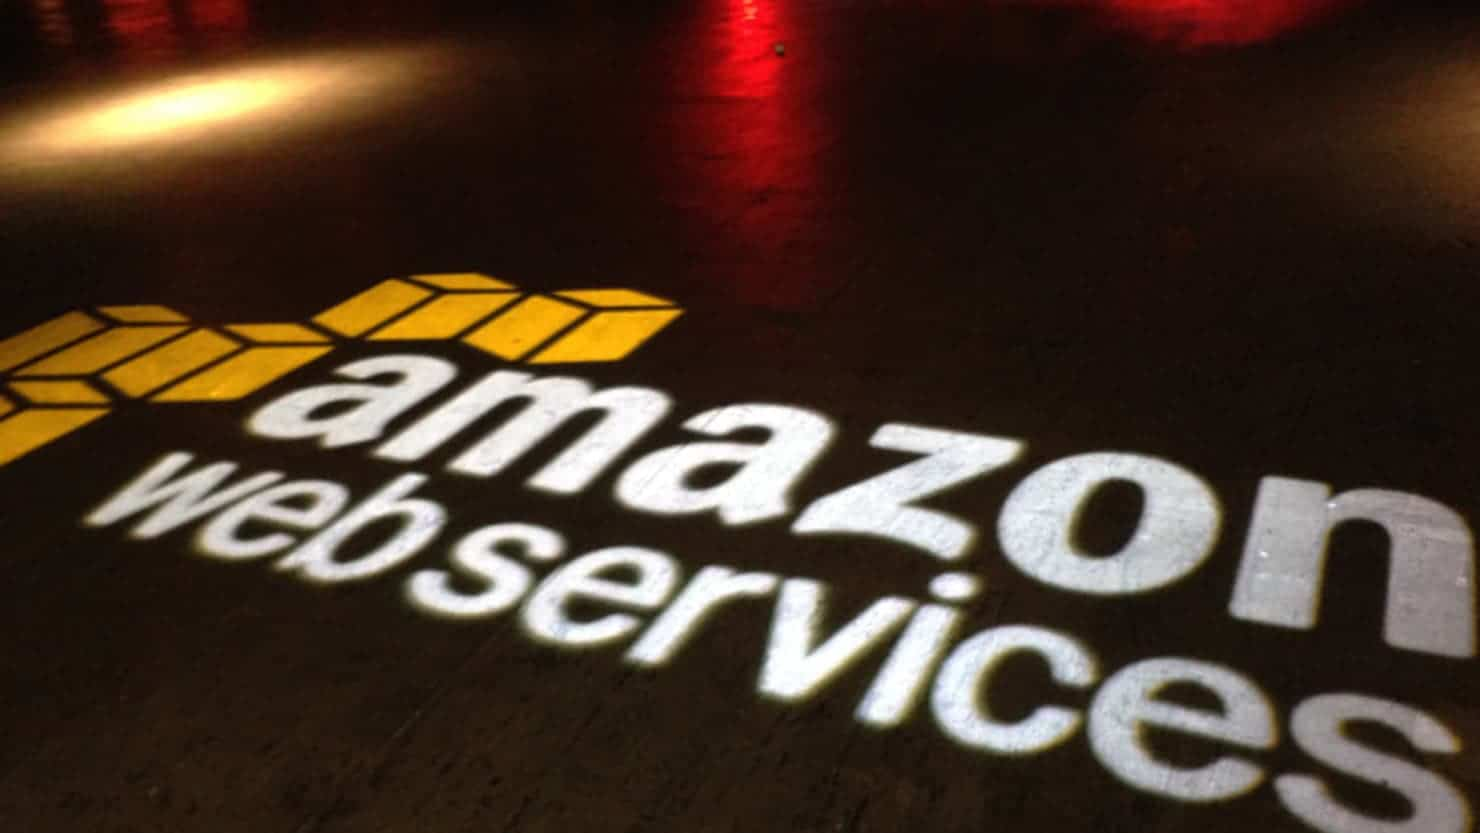 Amazon Makes a Bet on Blockchain With Kaleido Deal